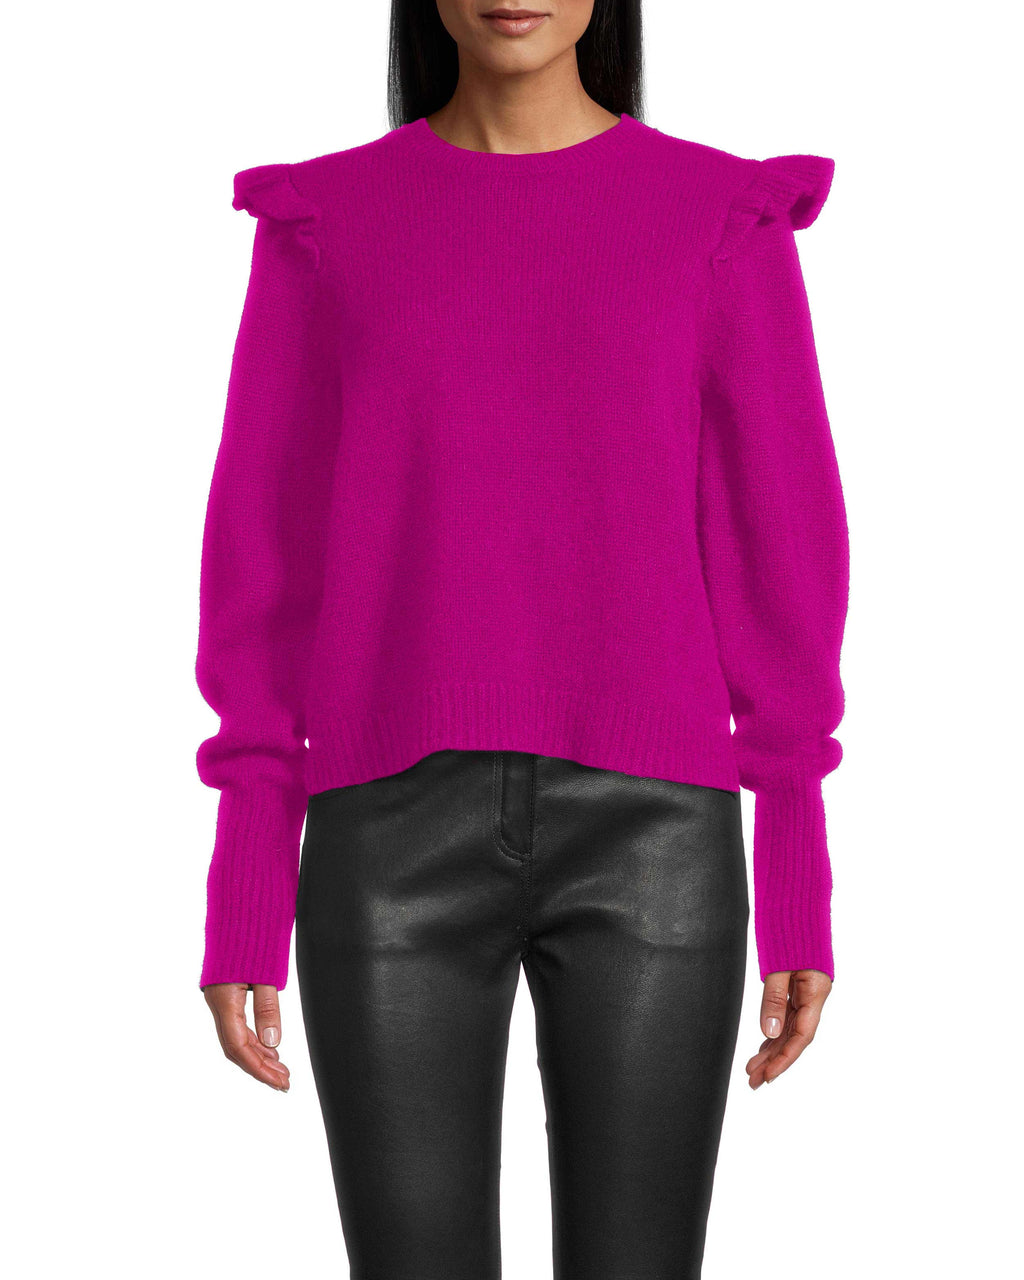 CT18410 - CASHMERE PUFF SLEEVE JEWEL NECK SWEATER - tops - knitwear - This sweater is a closet must have. Crafted from 100% cashmere, this piece is incredibly soft and features a slight ruffle along the shoulder for a feminine detail. Add 1 line break Stylist tip: Style with denim and heeled booties.